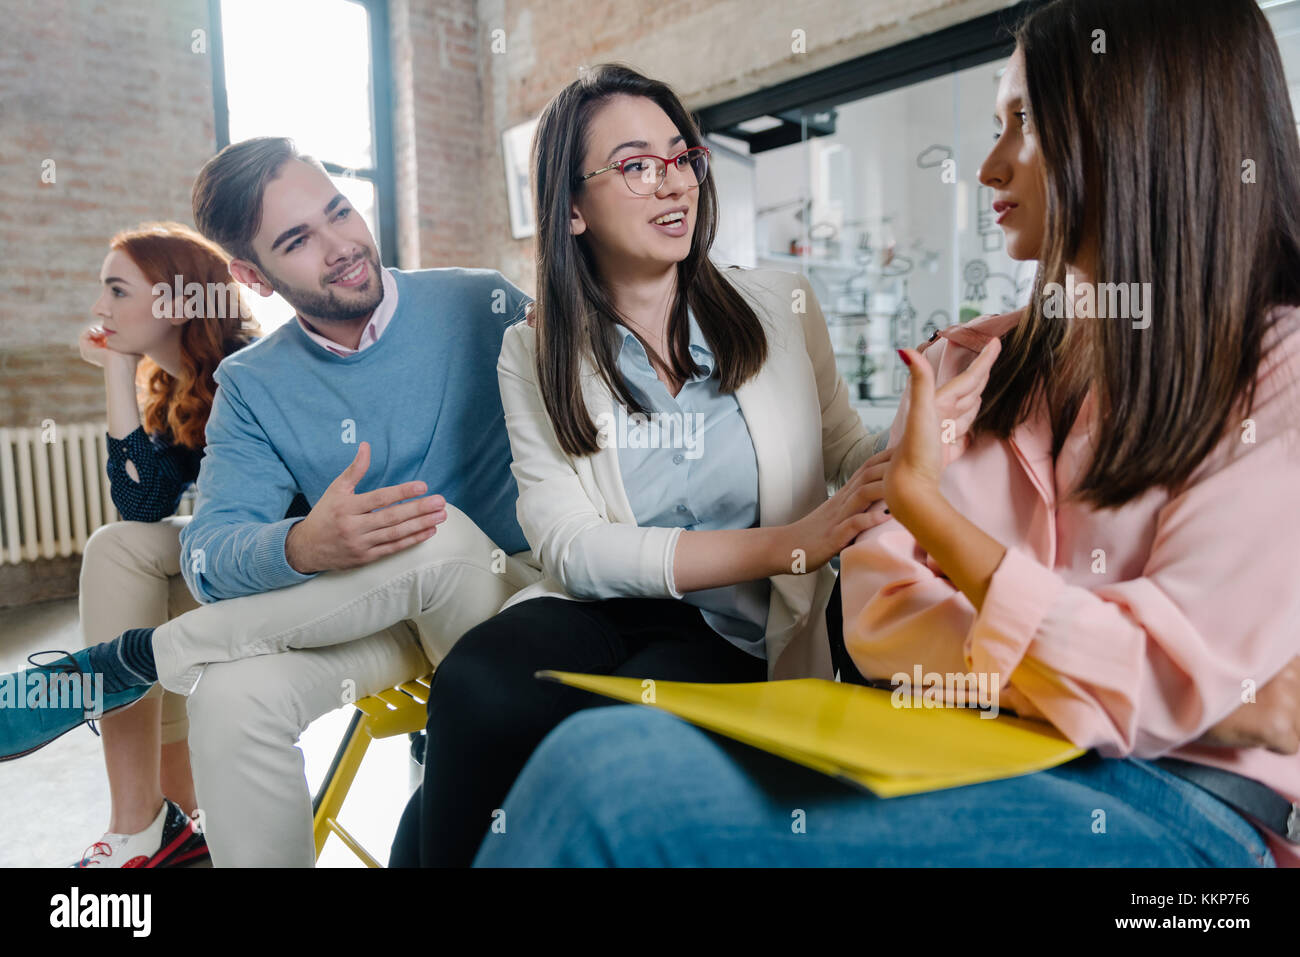 Chatting before the job interviews - Stock Image